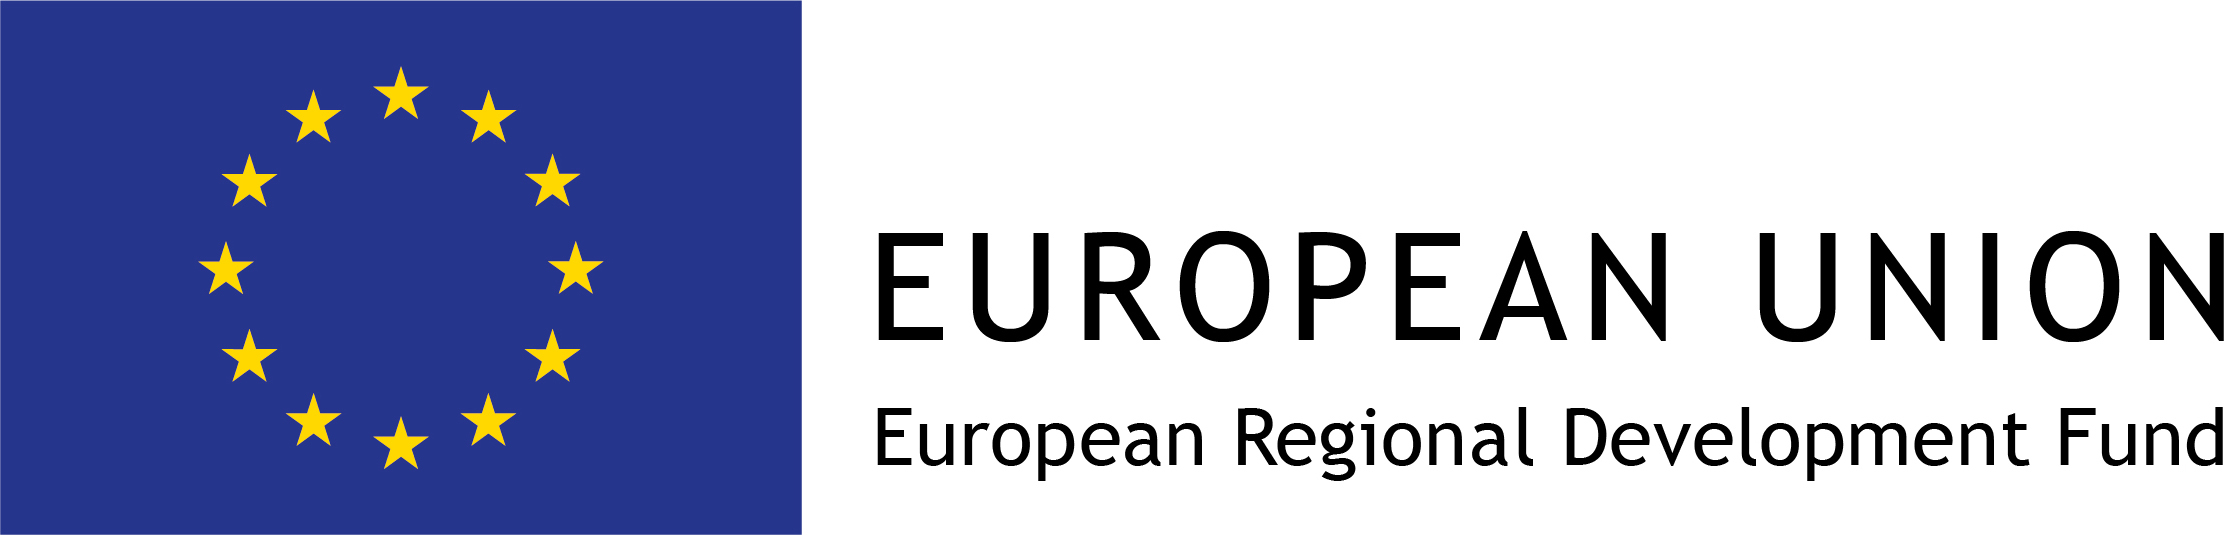 European Union : European Regional Development Fund logo